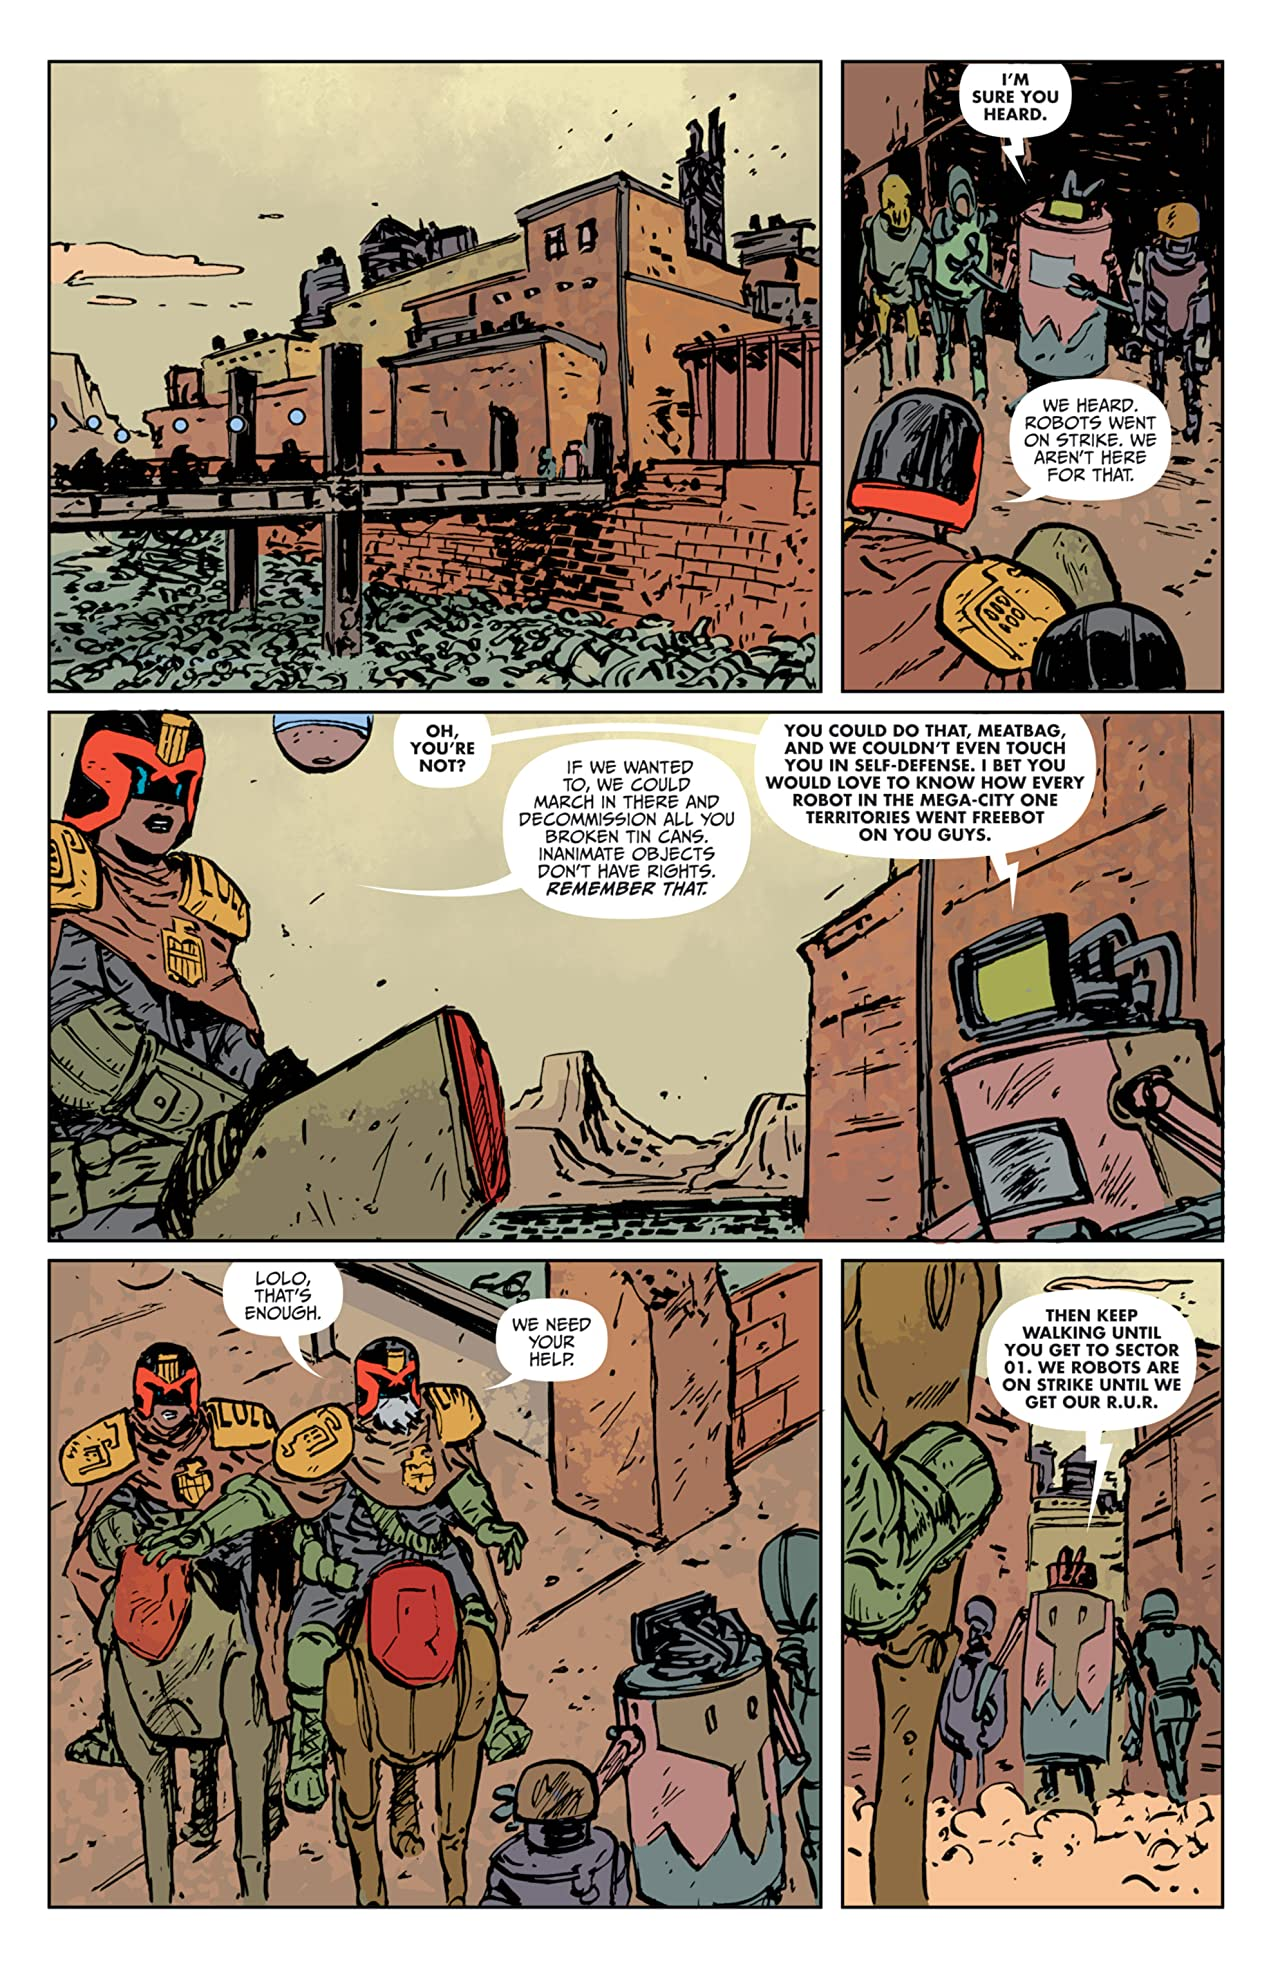 Judge Dredd: The Blessed Earth #4